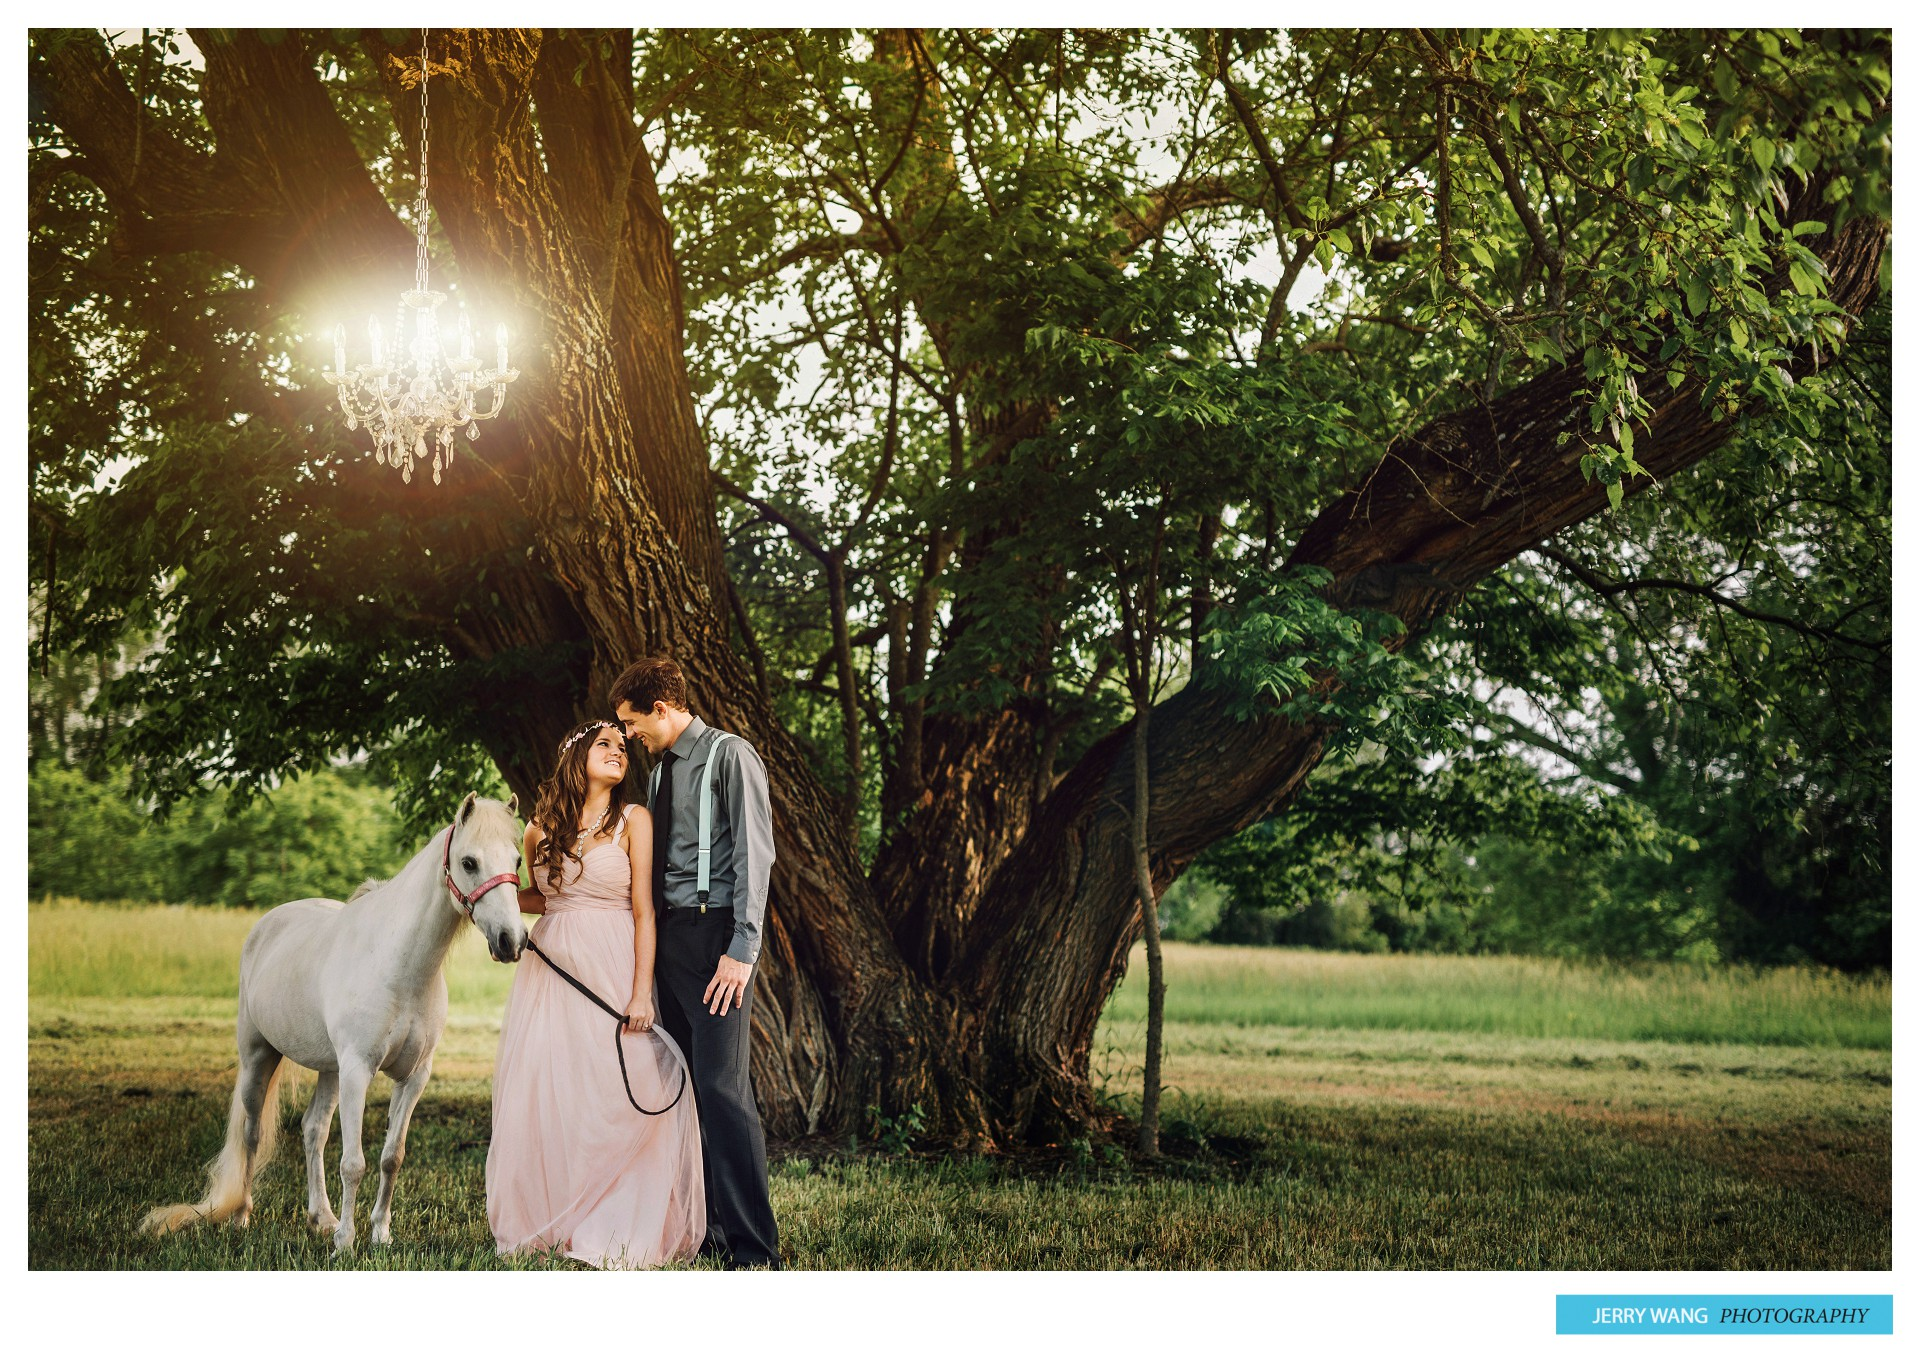 S&B_Spring_Hills_Kansas_Hickory_Creek_Engagement_Session 15